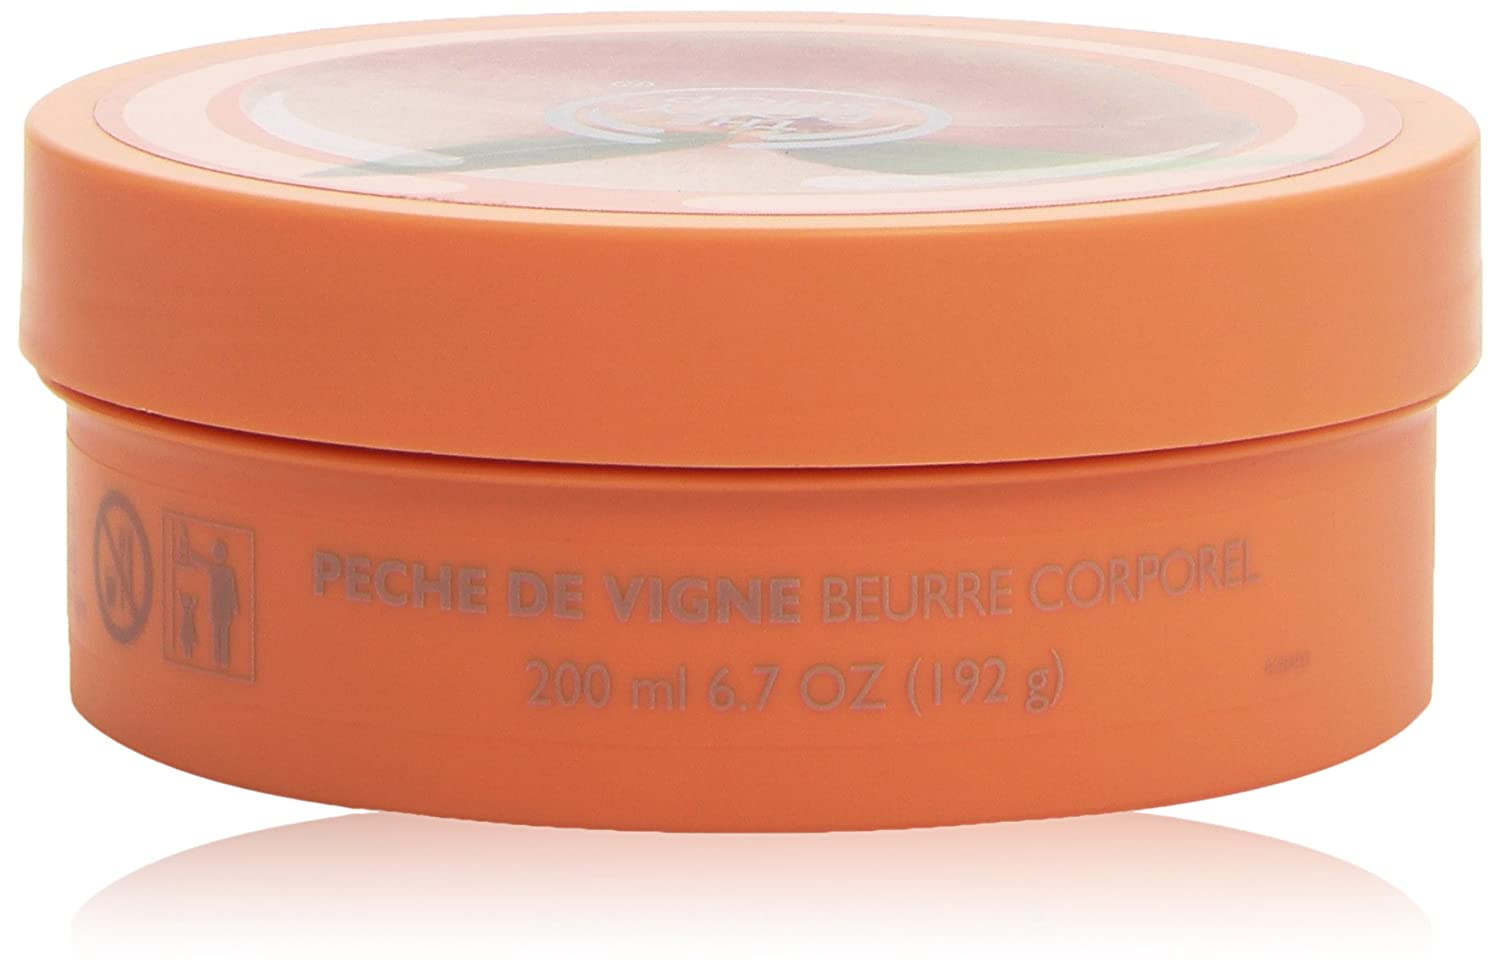 The Body Shop Vineyard Peach Body Butter 200 ml L' Oreal KBH0808